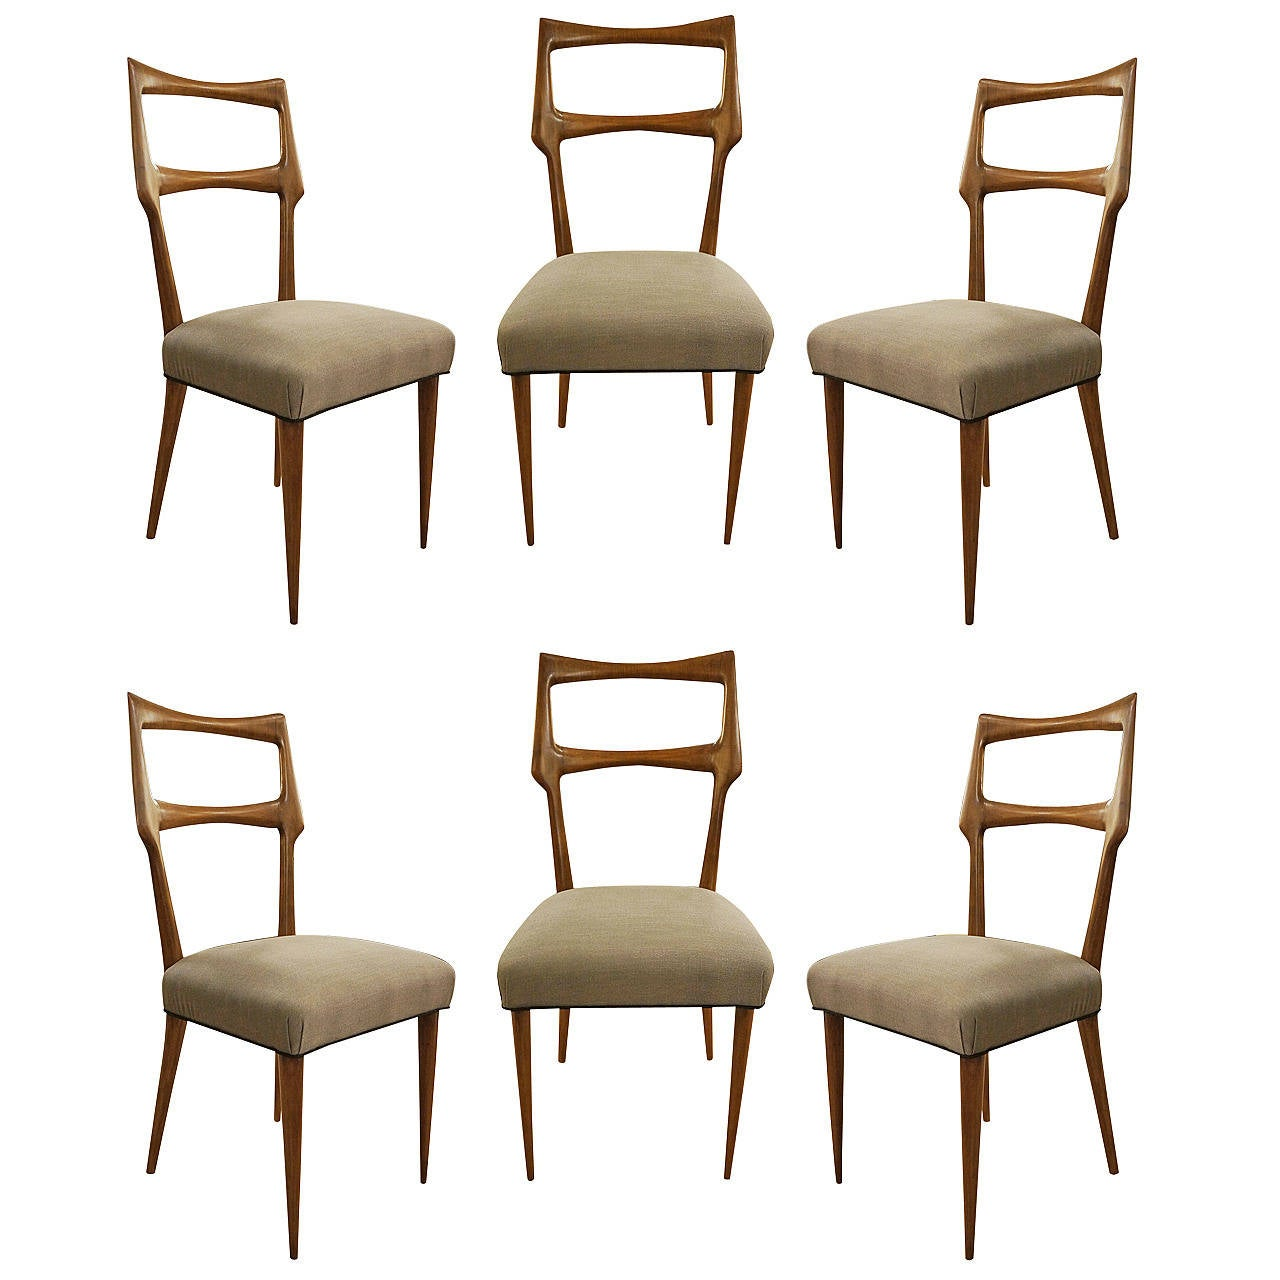 Set of six dinning room chairs italy 1950s at 1stdibs for Furniture 1950